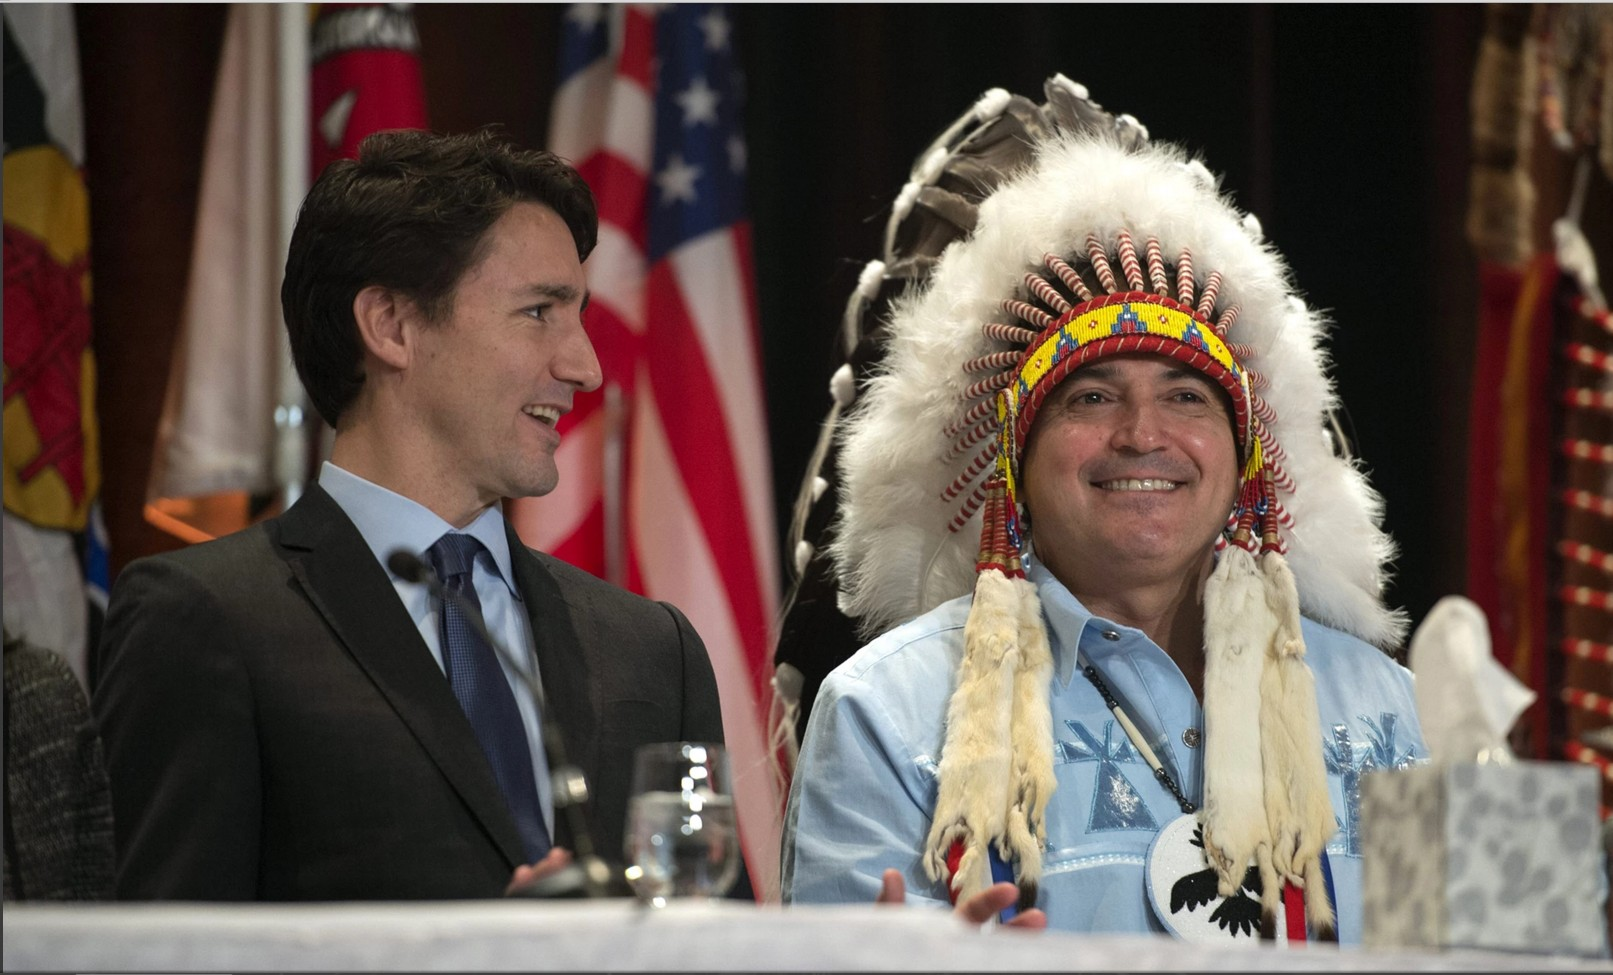 Justin Trudeau and Perry Bellegarde